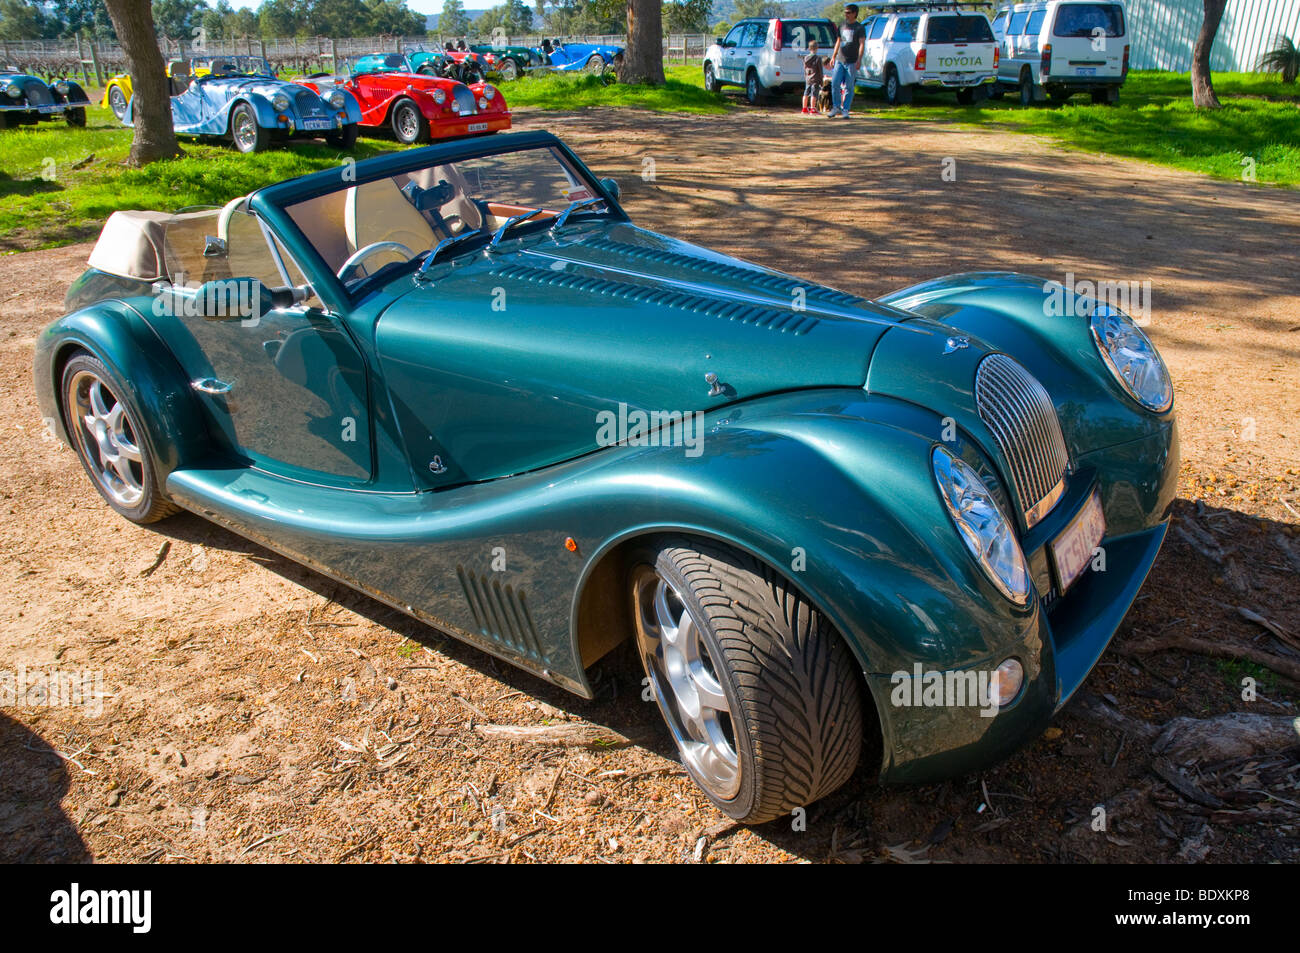 A metallic green Morgan Aero 8 sports car - Stock Image